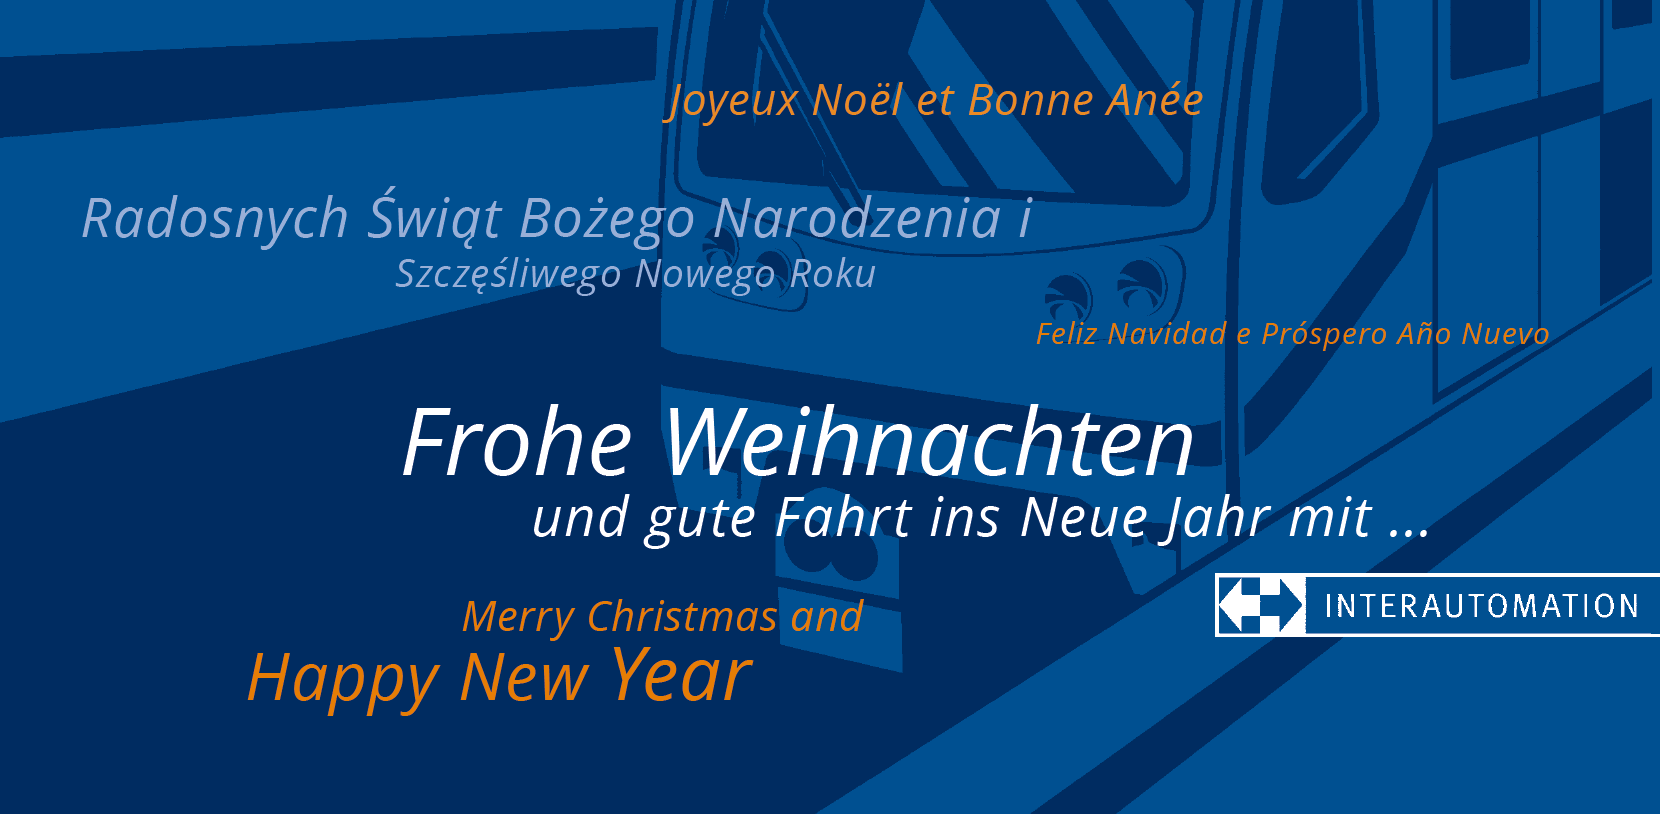 Weihnacht INTERAUTOMATION